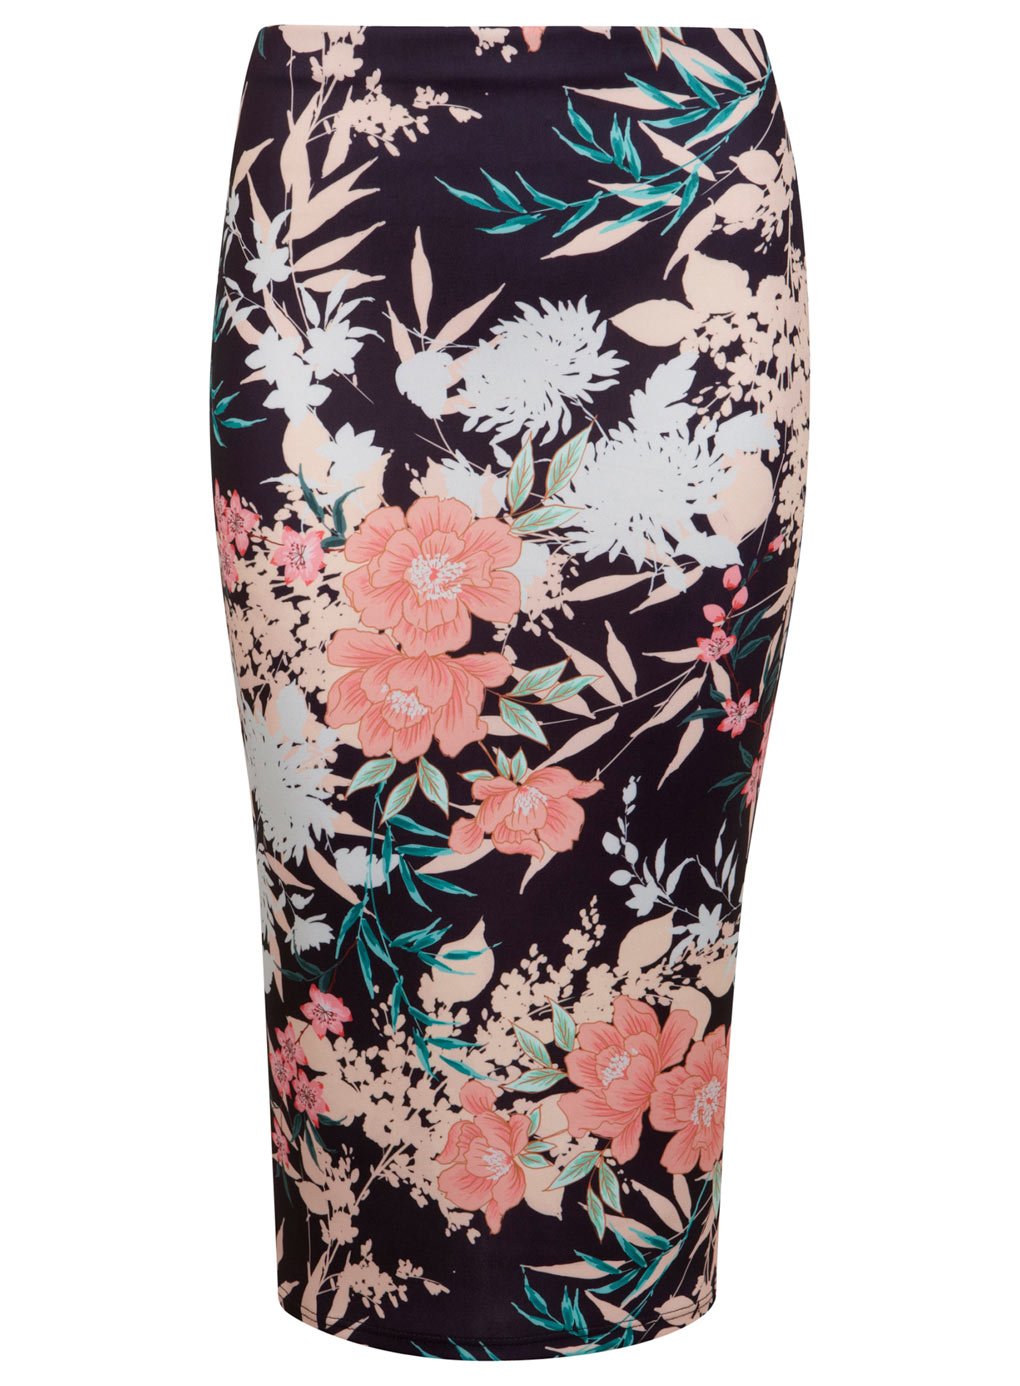 M1ss S3lfridge NAVY Oriental Floral Midi Skirt - Size 6 to 16